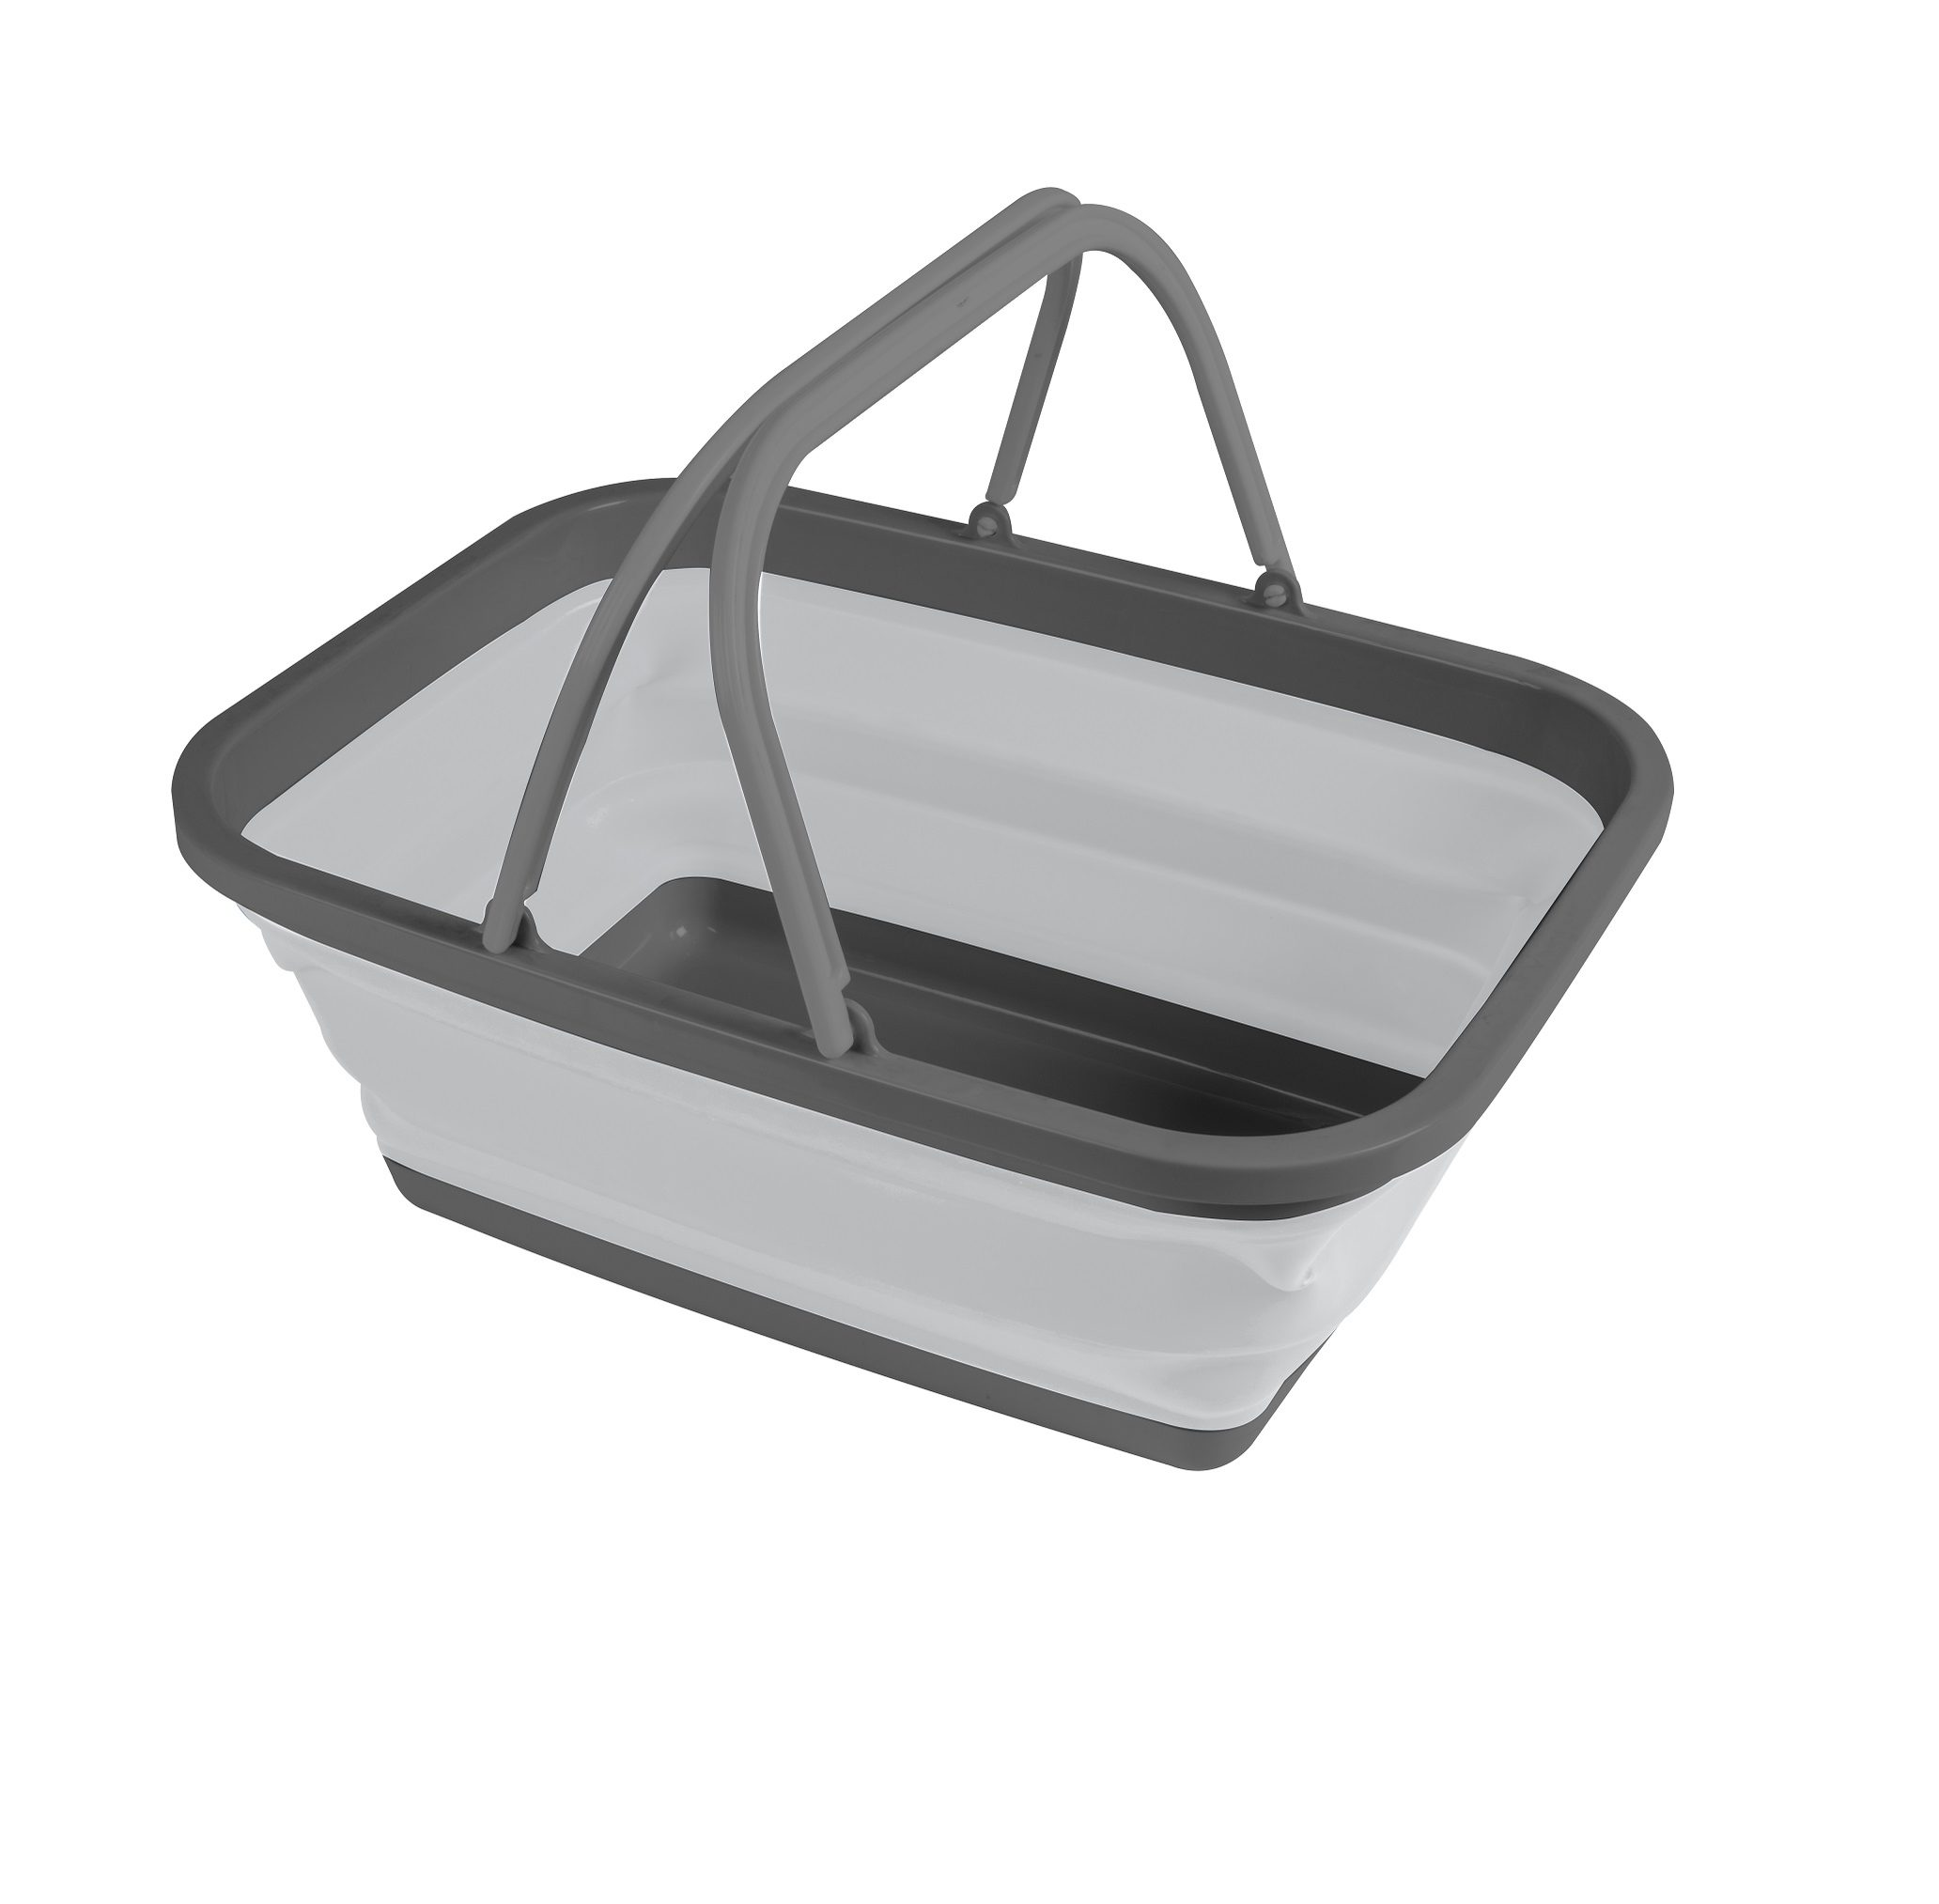 Kampa Folding Washing Bowl Small - CW0081 / CW0082